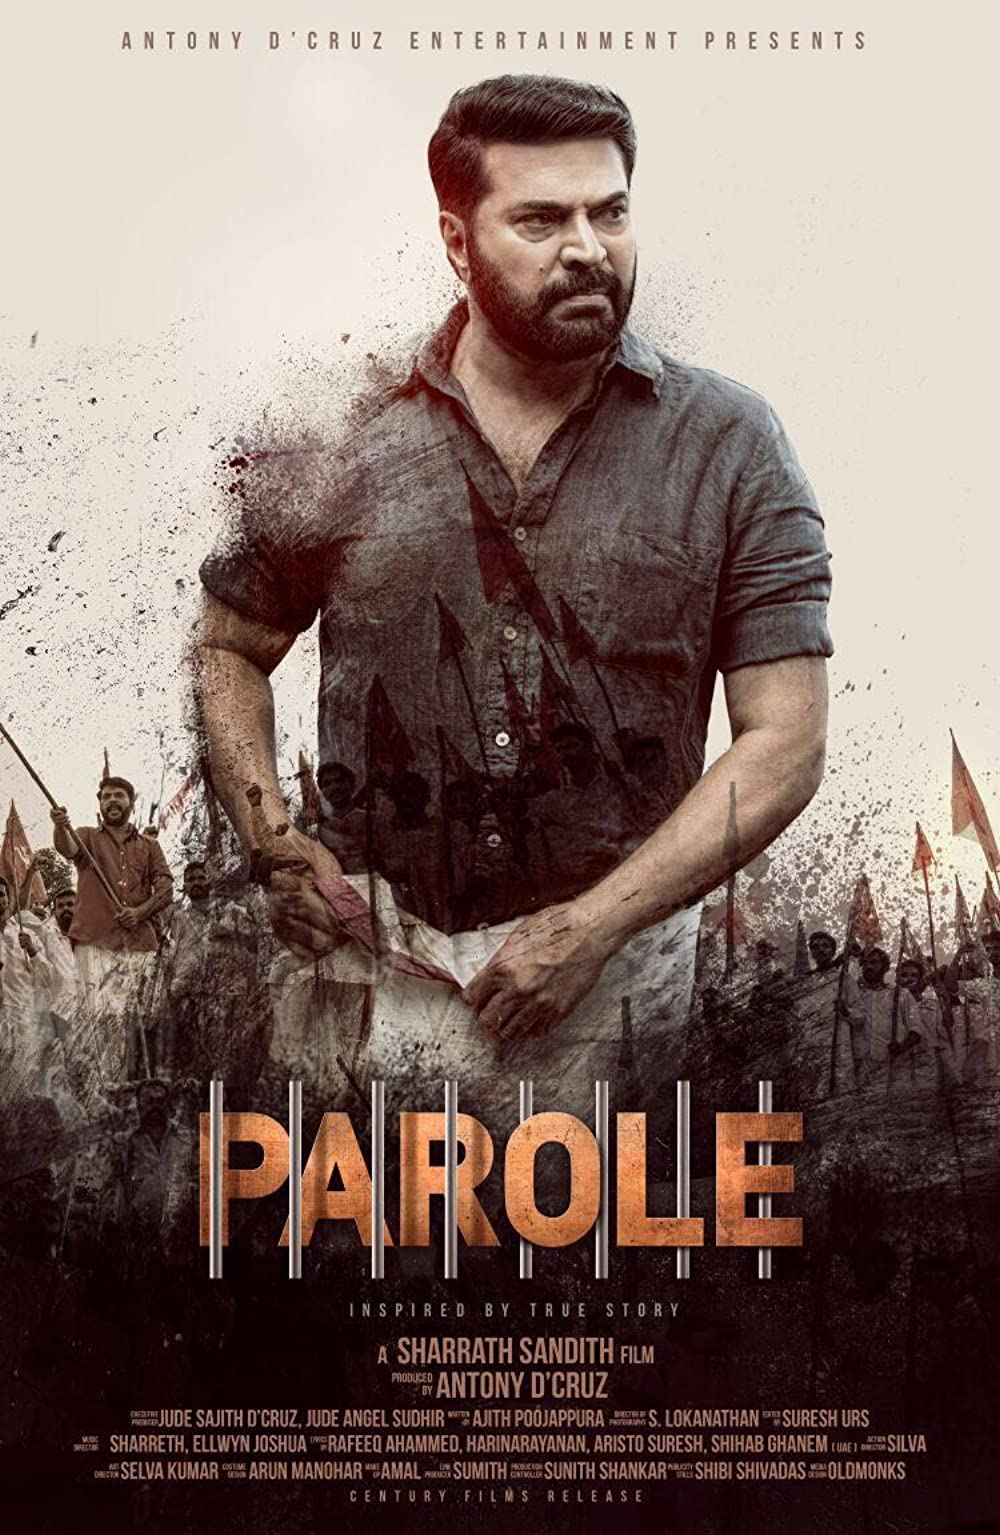 Parol (Parole) 2021 Hindi Dubbed 1080p HDRip 1430MB Download